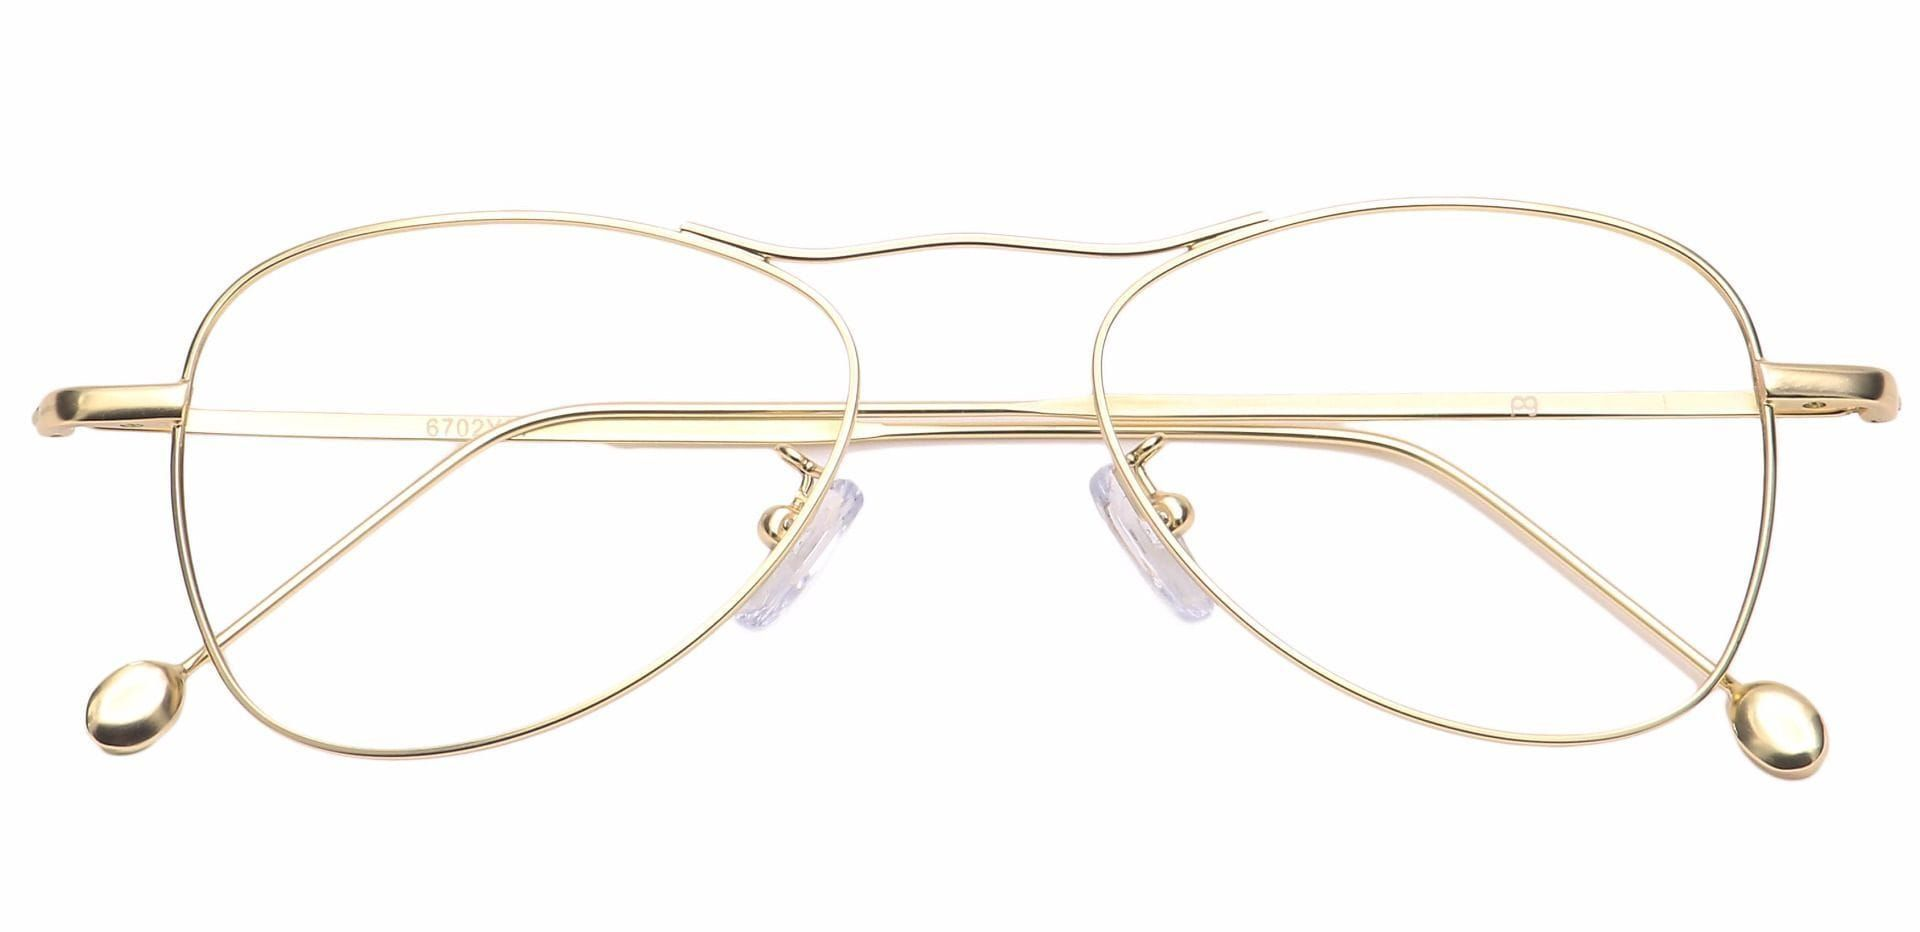 Brio Aviator Non-Rx Glasses - Gold